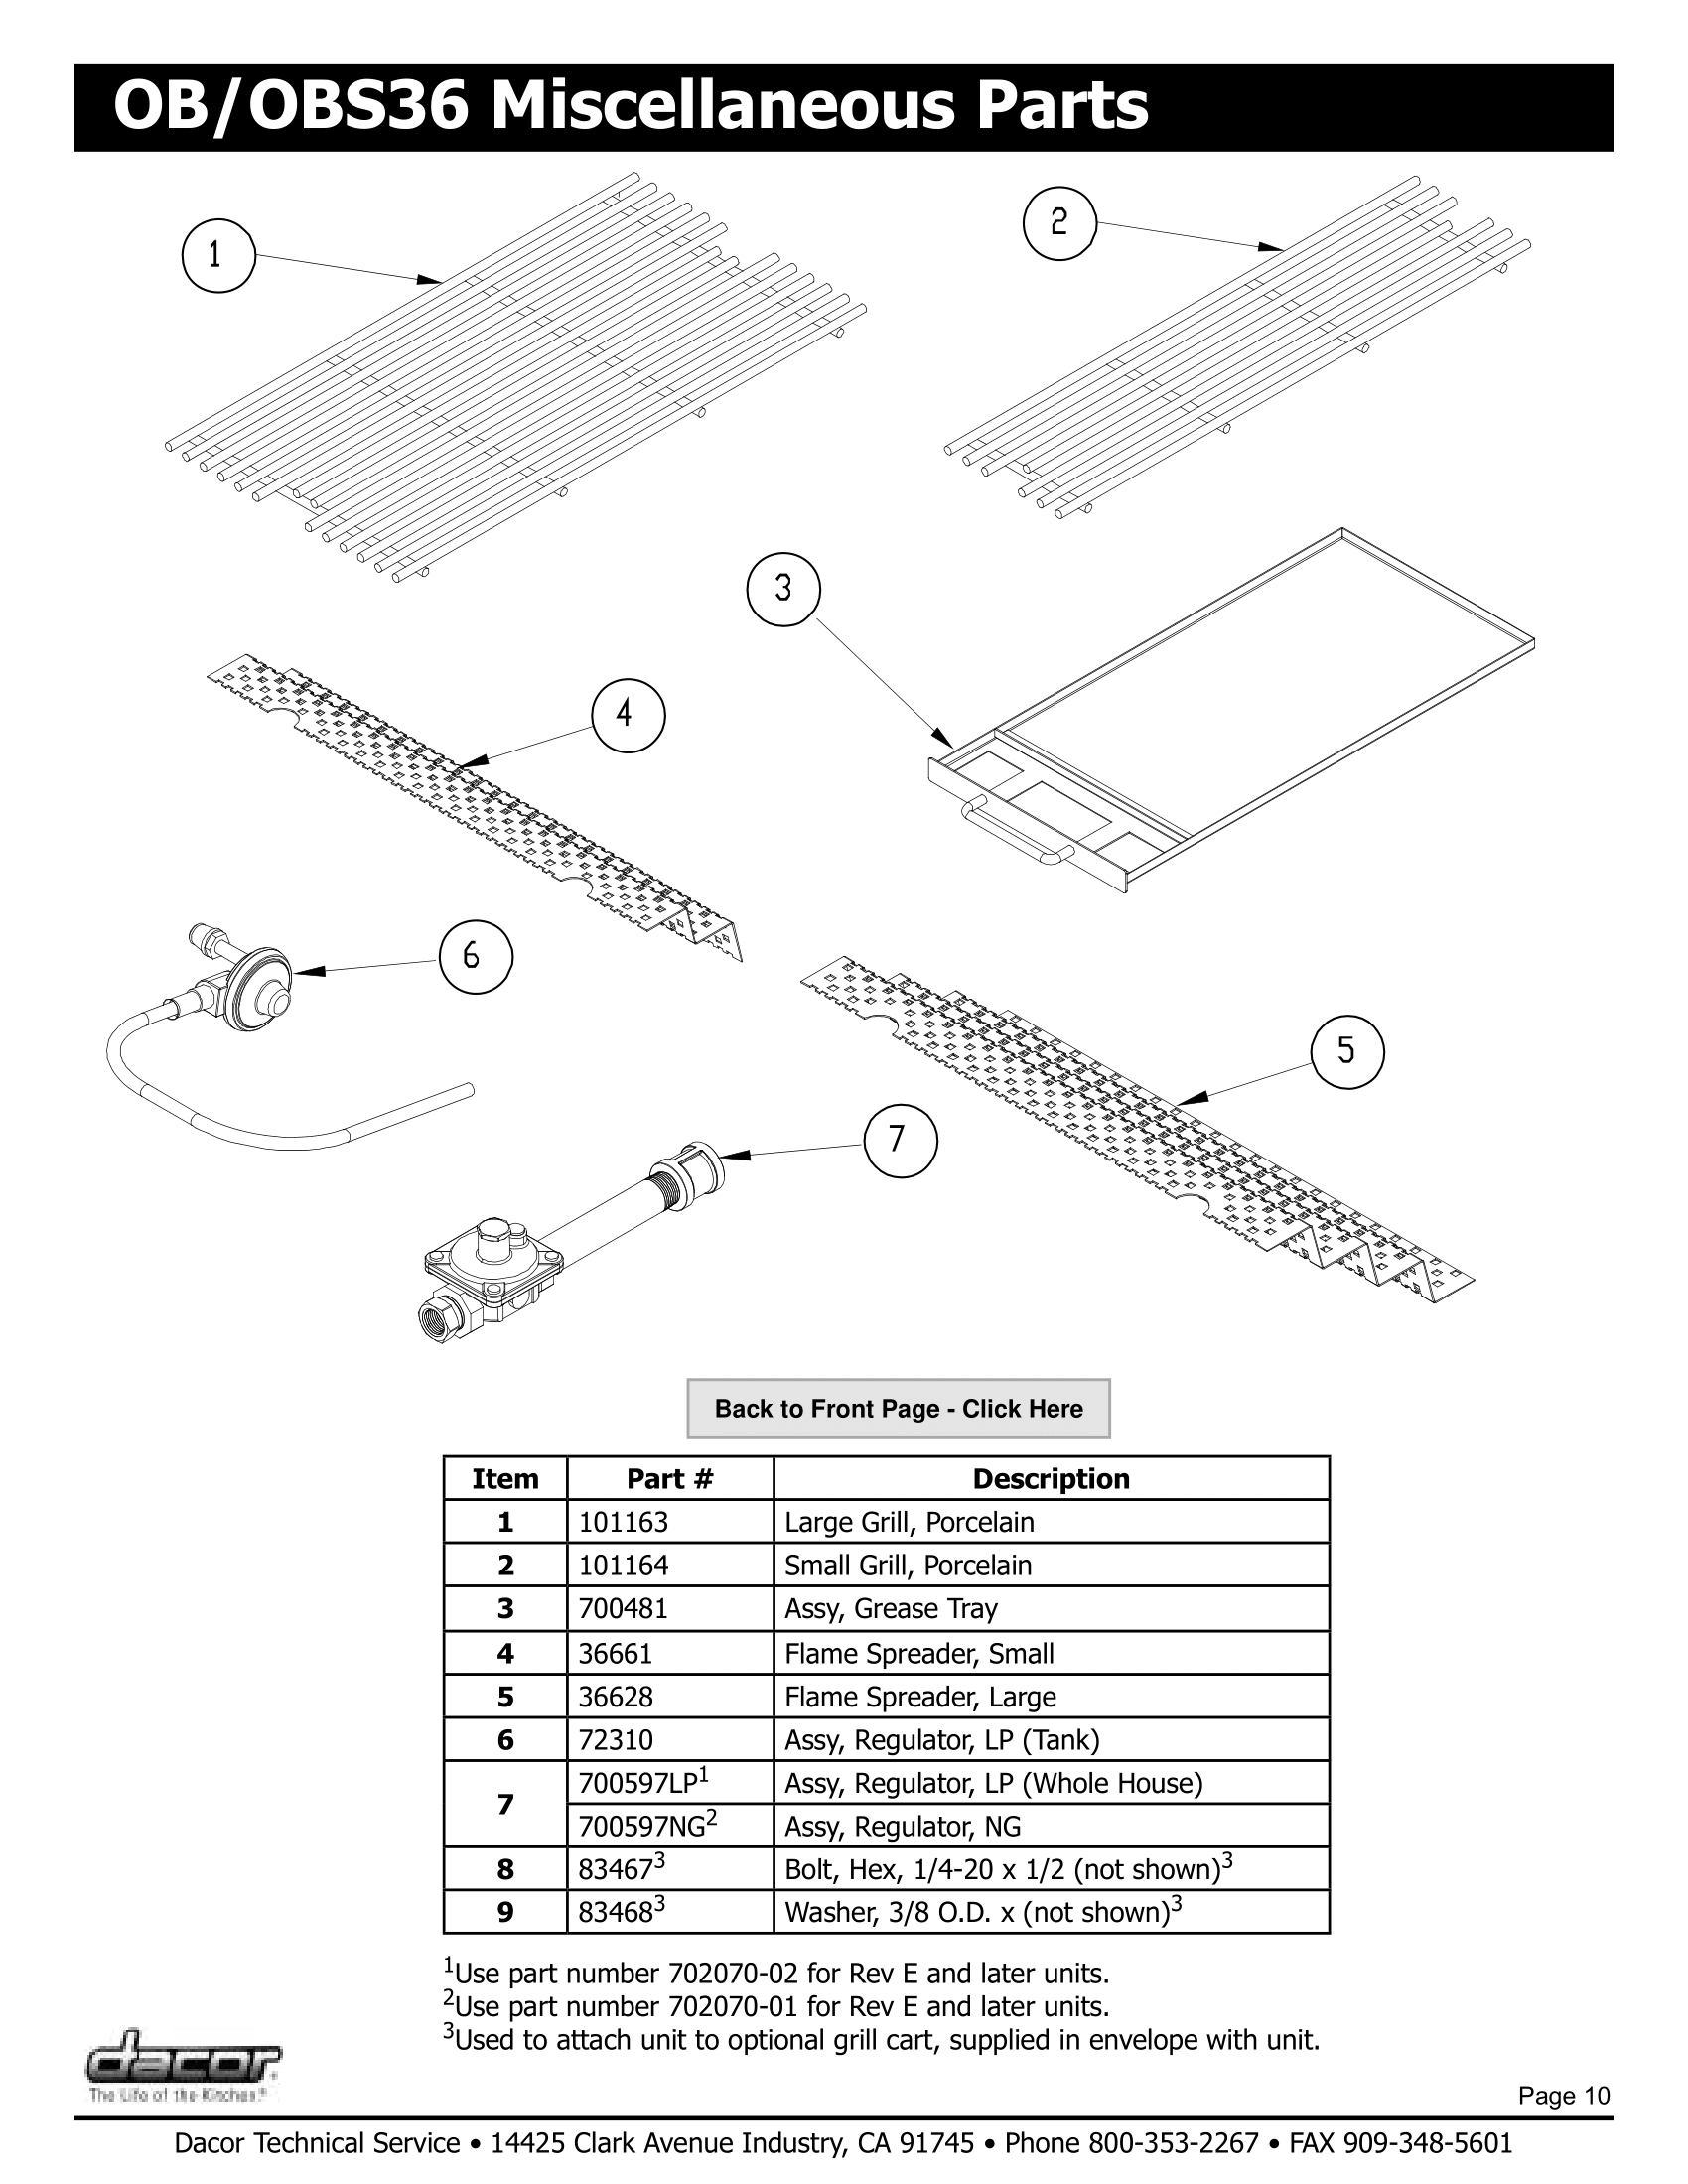 Dacor OBS36 Miscellaneous Parts Schematic